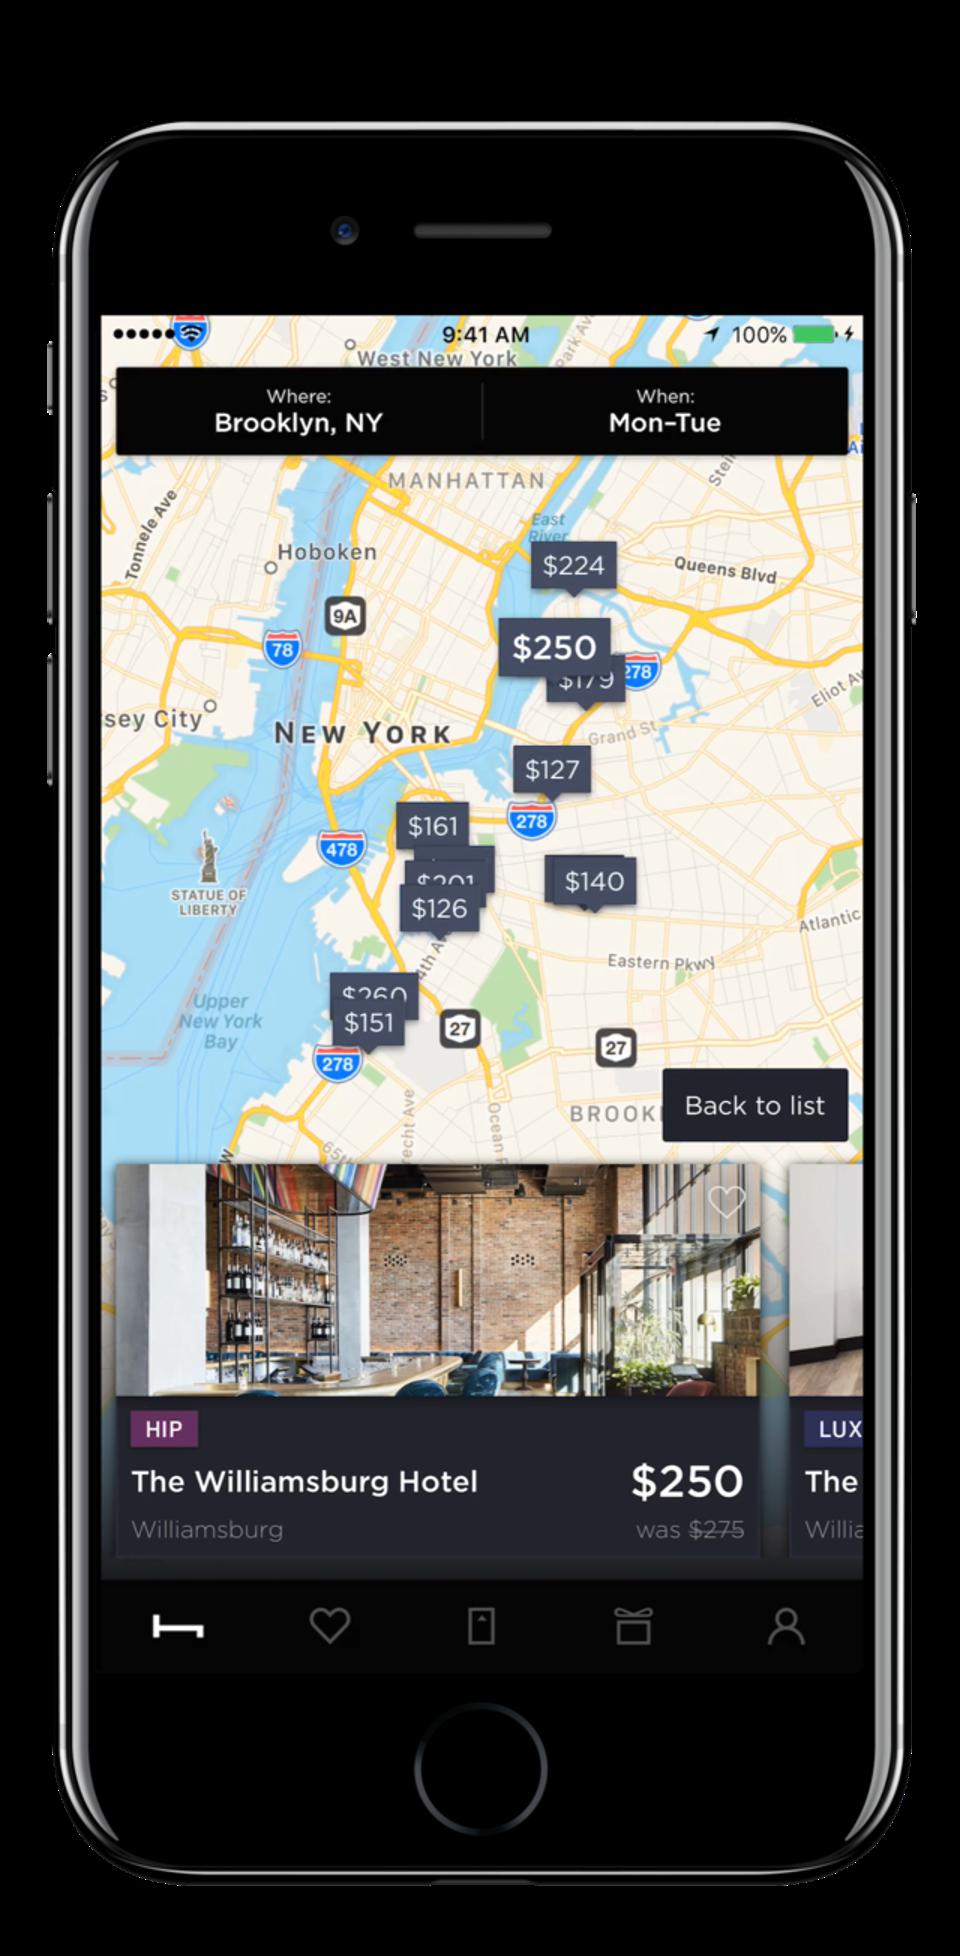 Selecting hotels on the HotelTonight app.